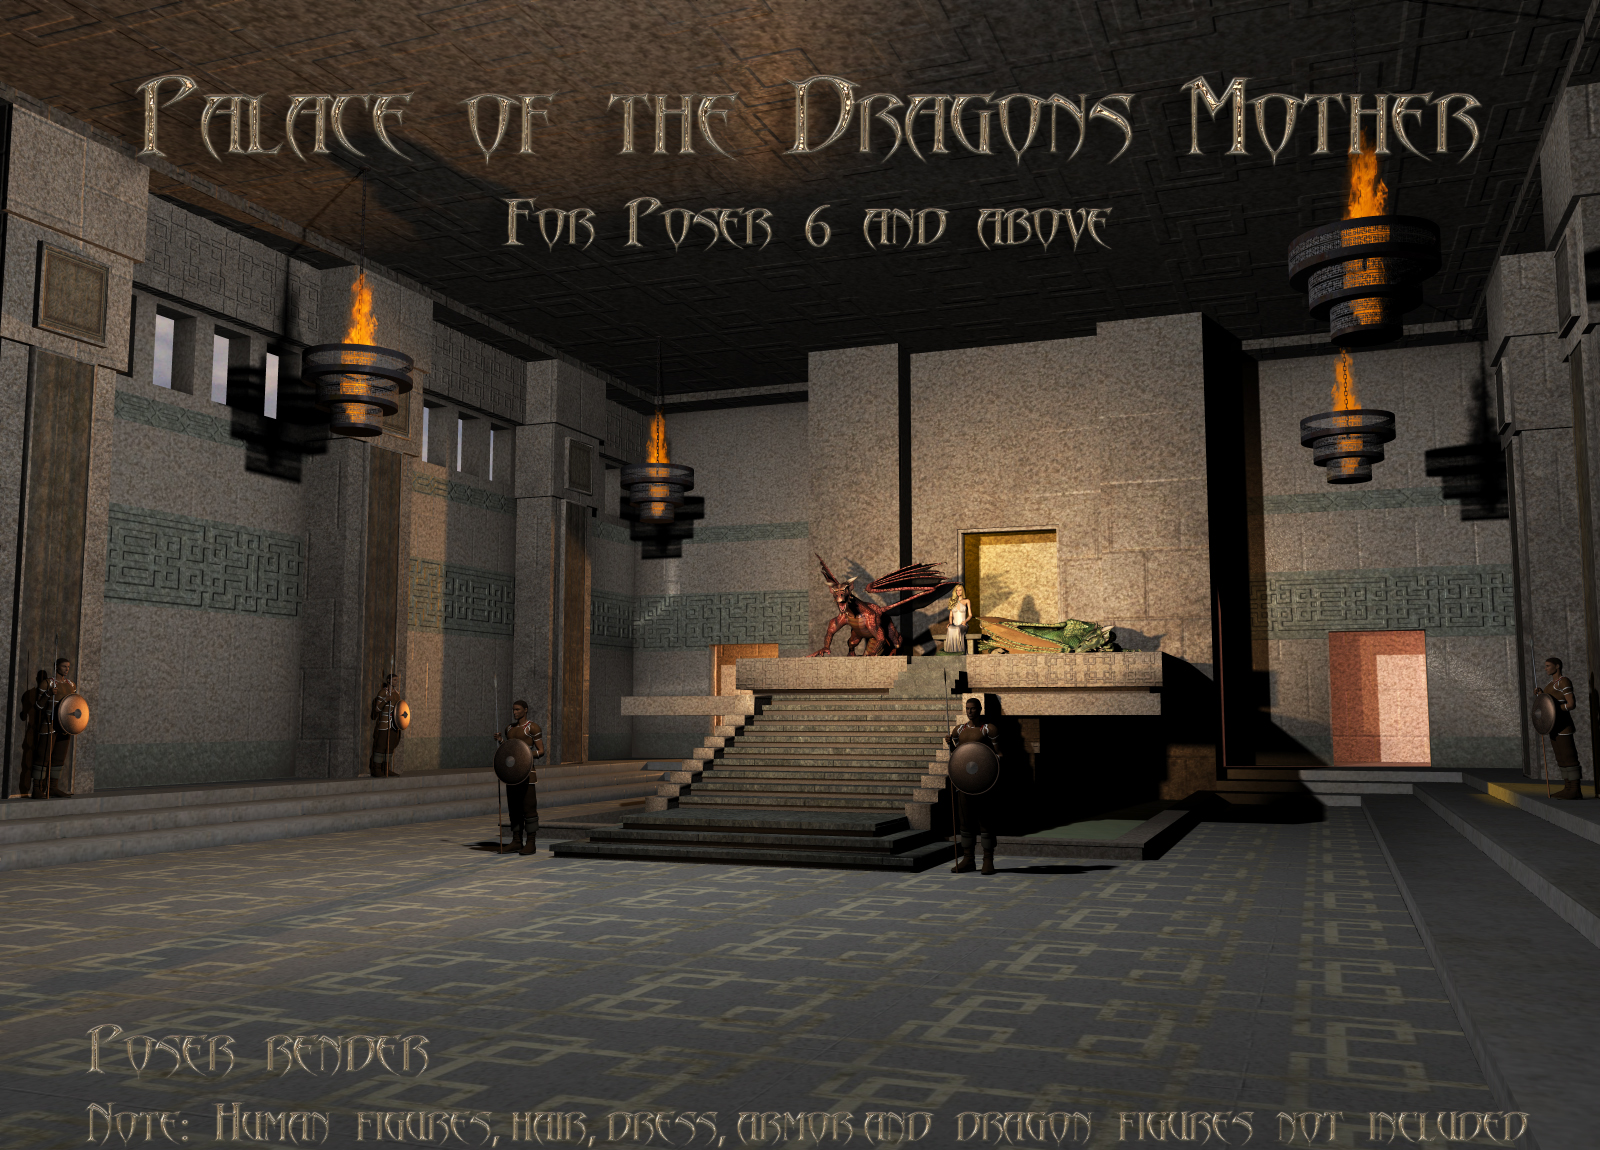 AJ Palace of the Dragons Mother